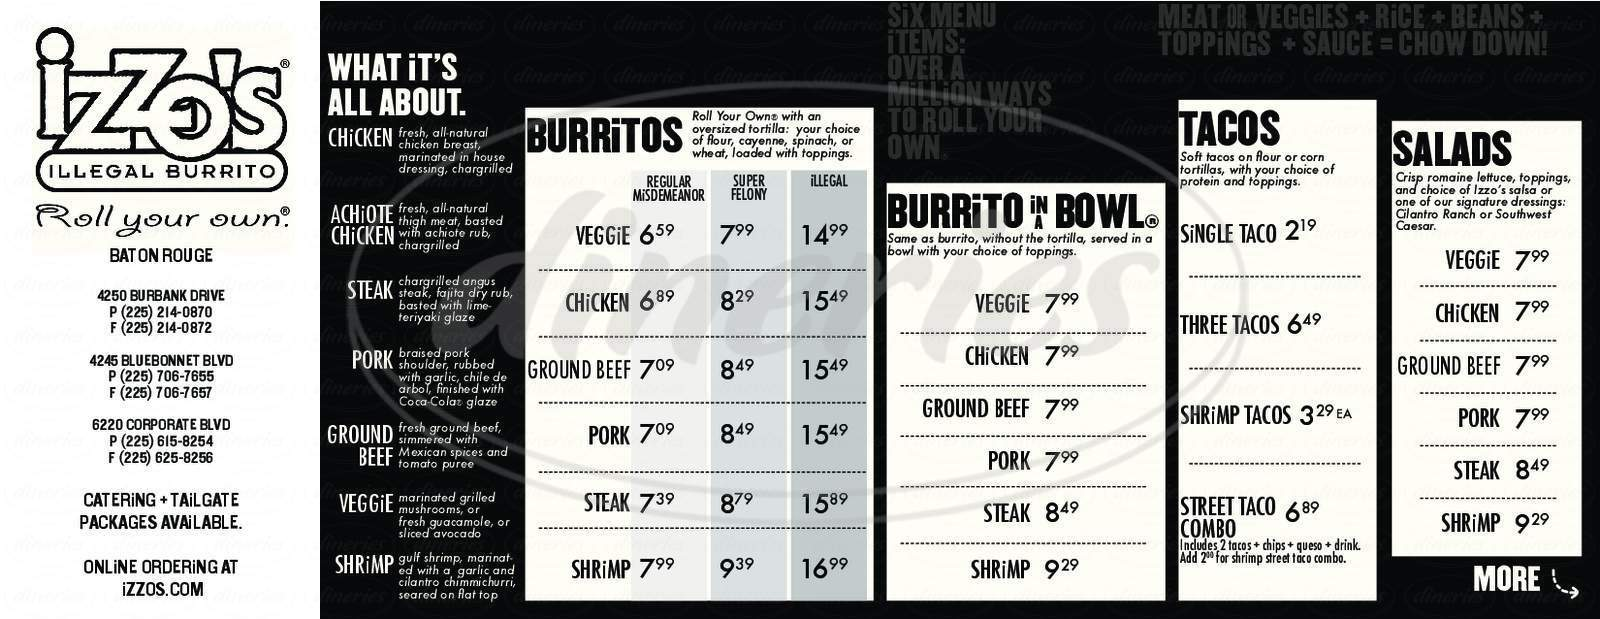 menu for Izzo's Illegal Burrito